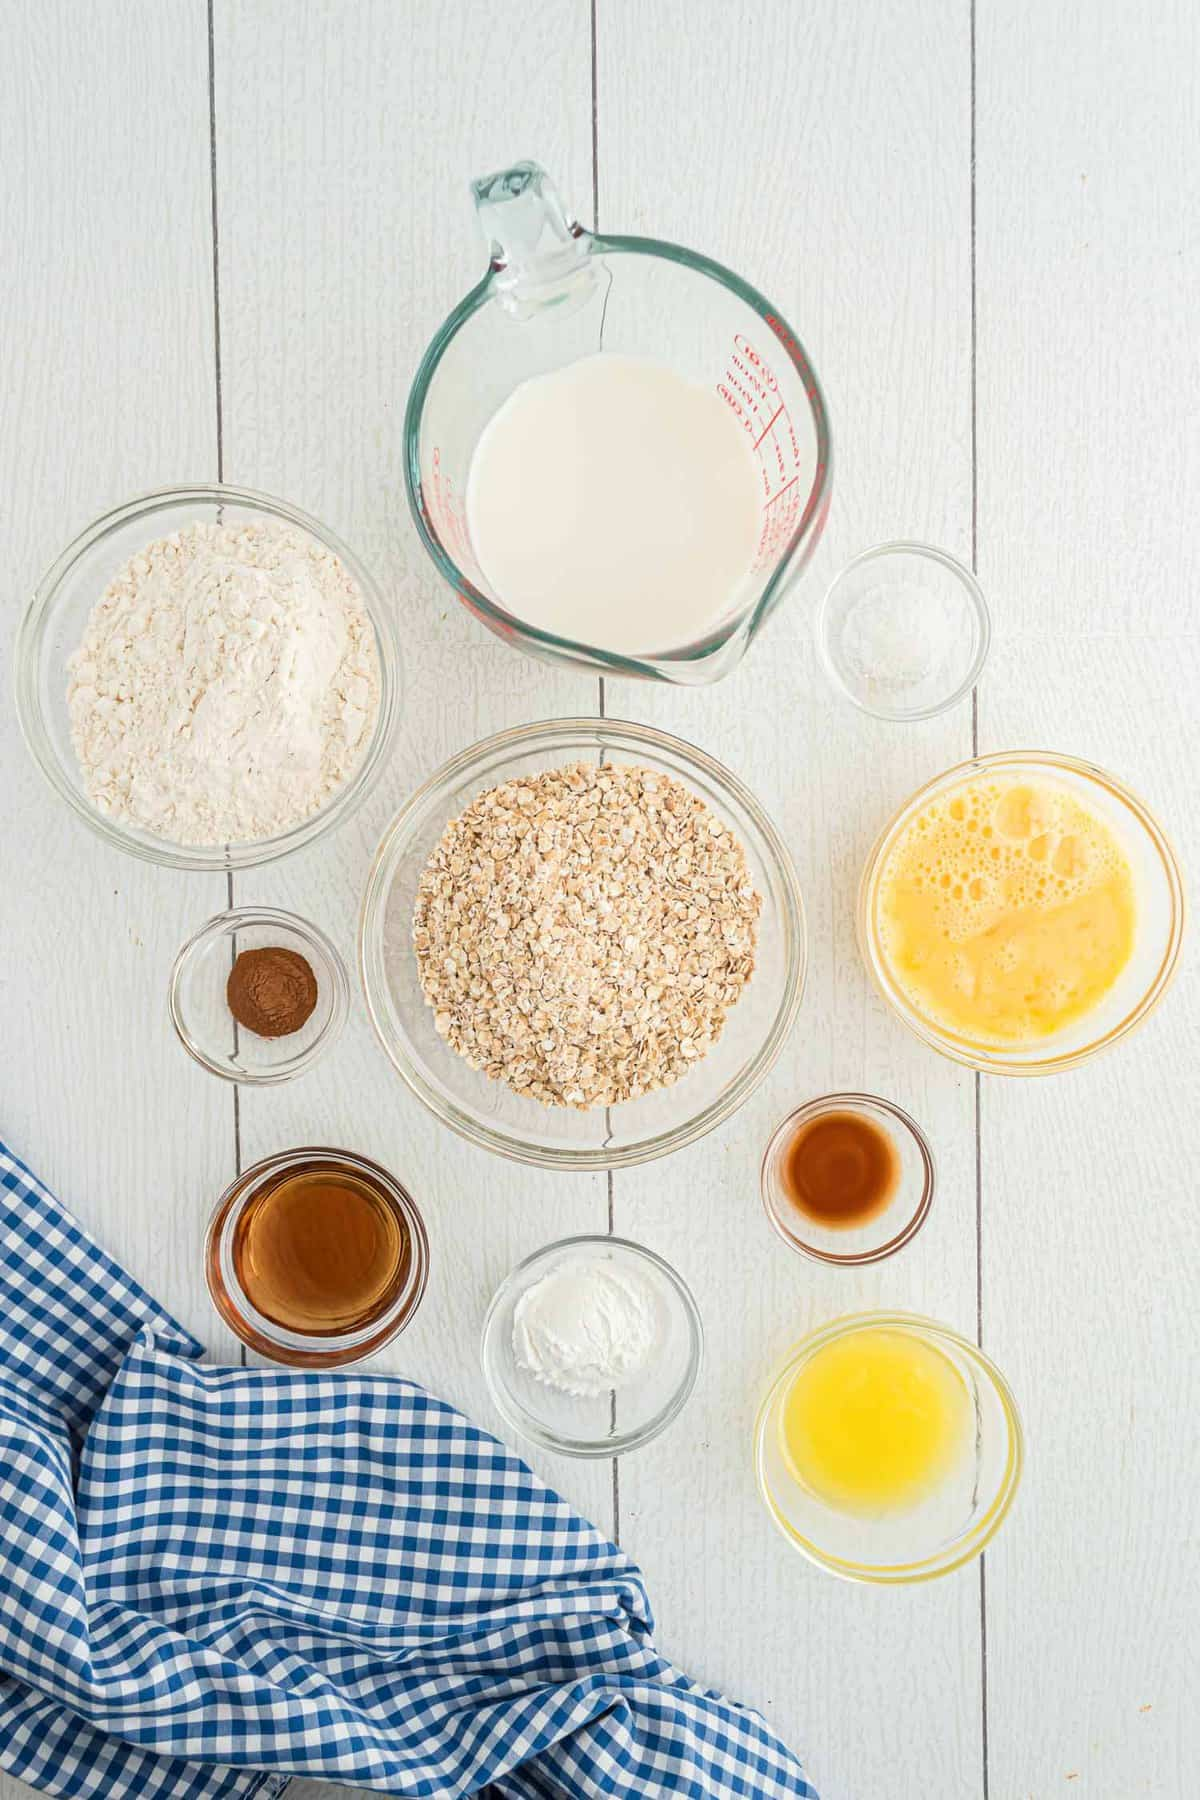 Overhead view of bowls of ingredients: oats, flour, butter, vanilla, cinnamon, and more.